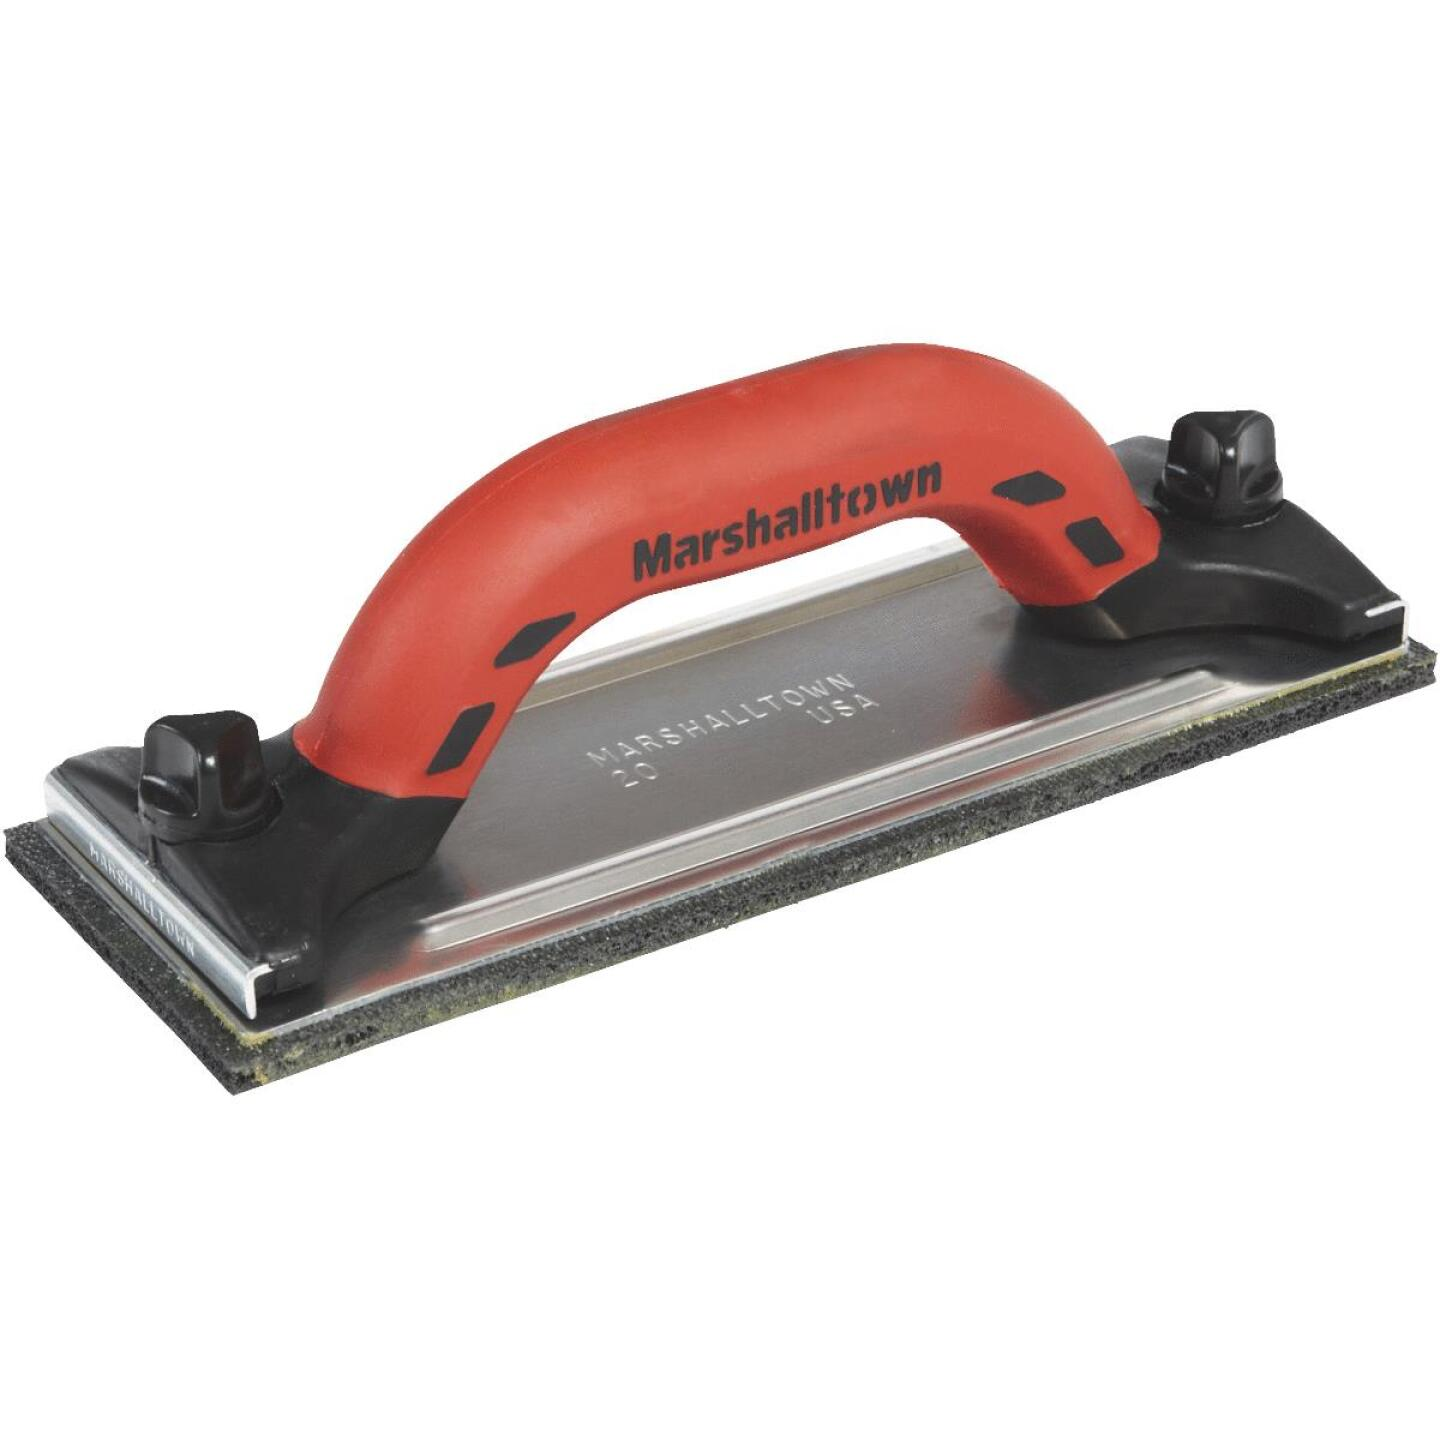 Marshalltown 9-3/8 In. x 3-1/4 In. Drywall Hand Sander Image 1